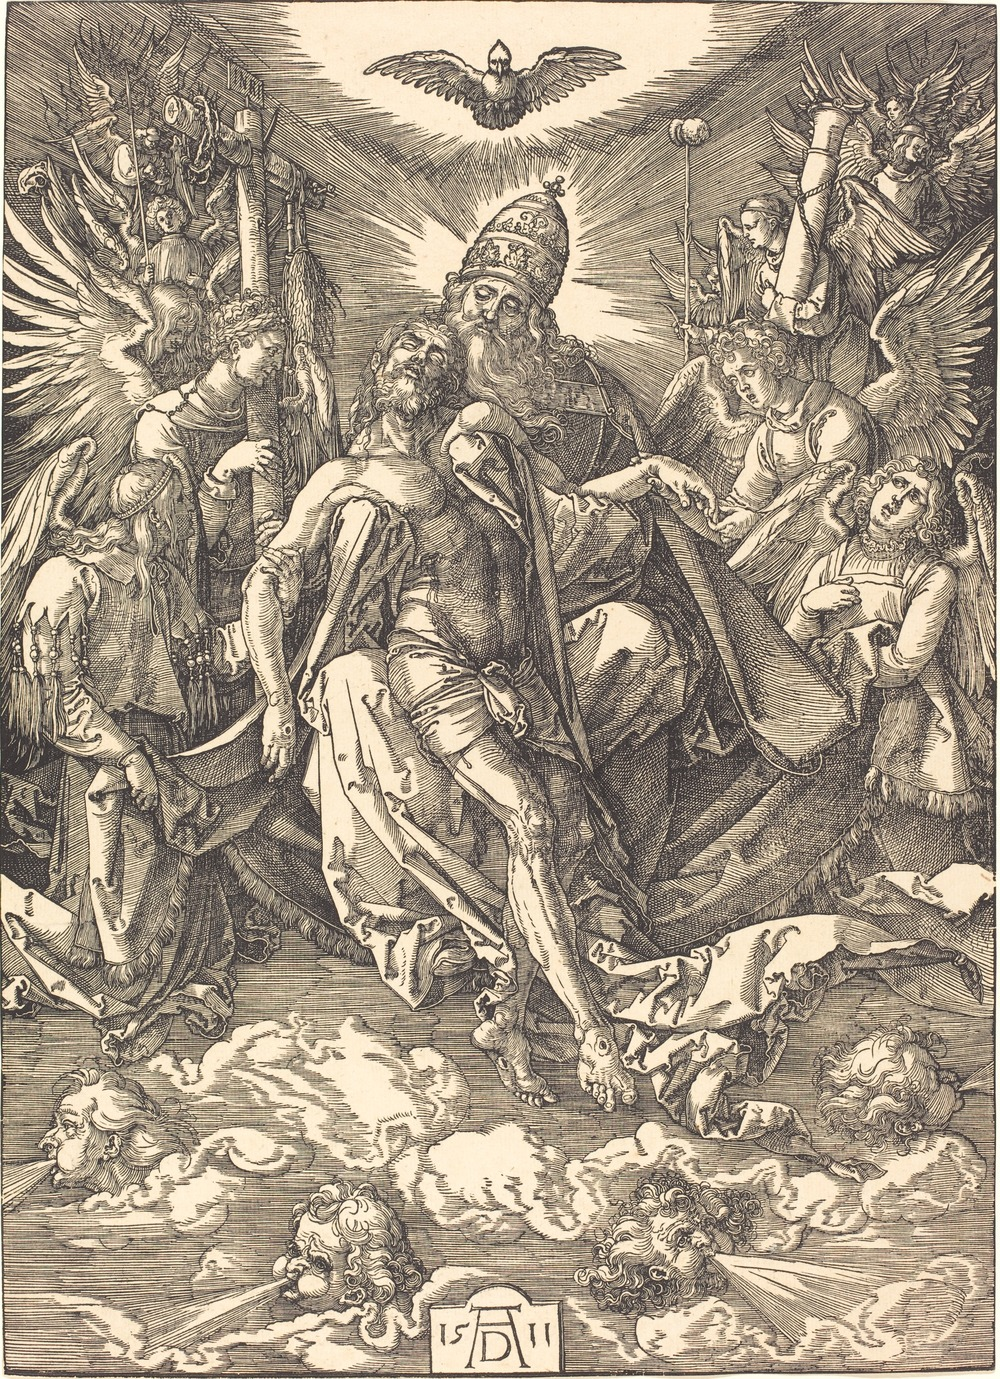 Albrecht Dürer, The Trinity, woodcut, 1511, National Gallery, Washington, DC.